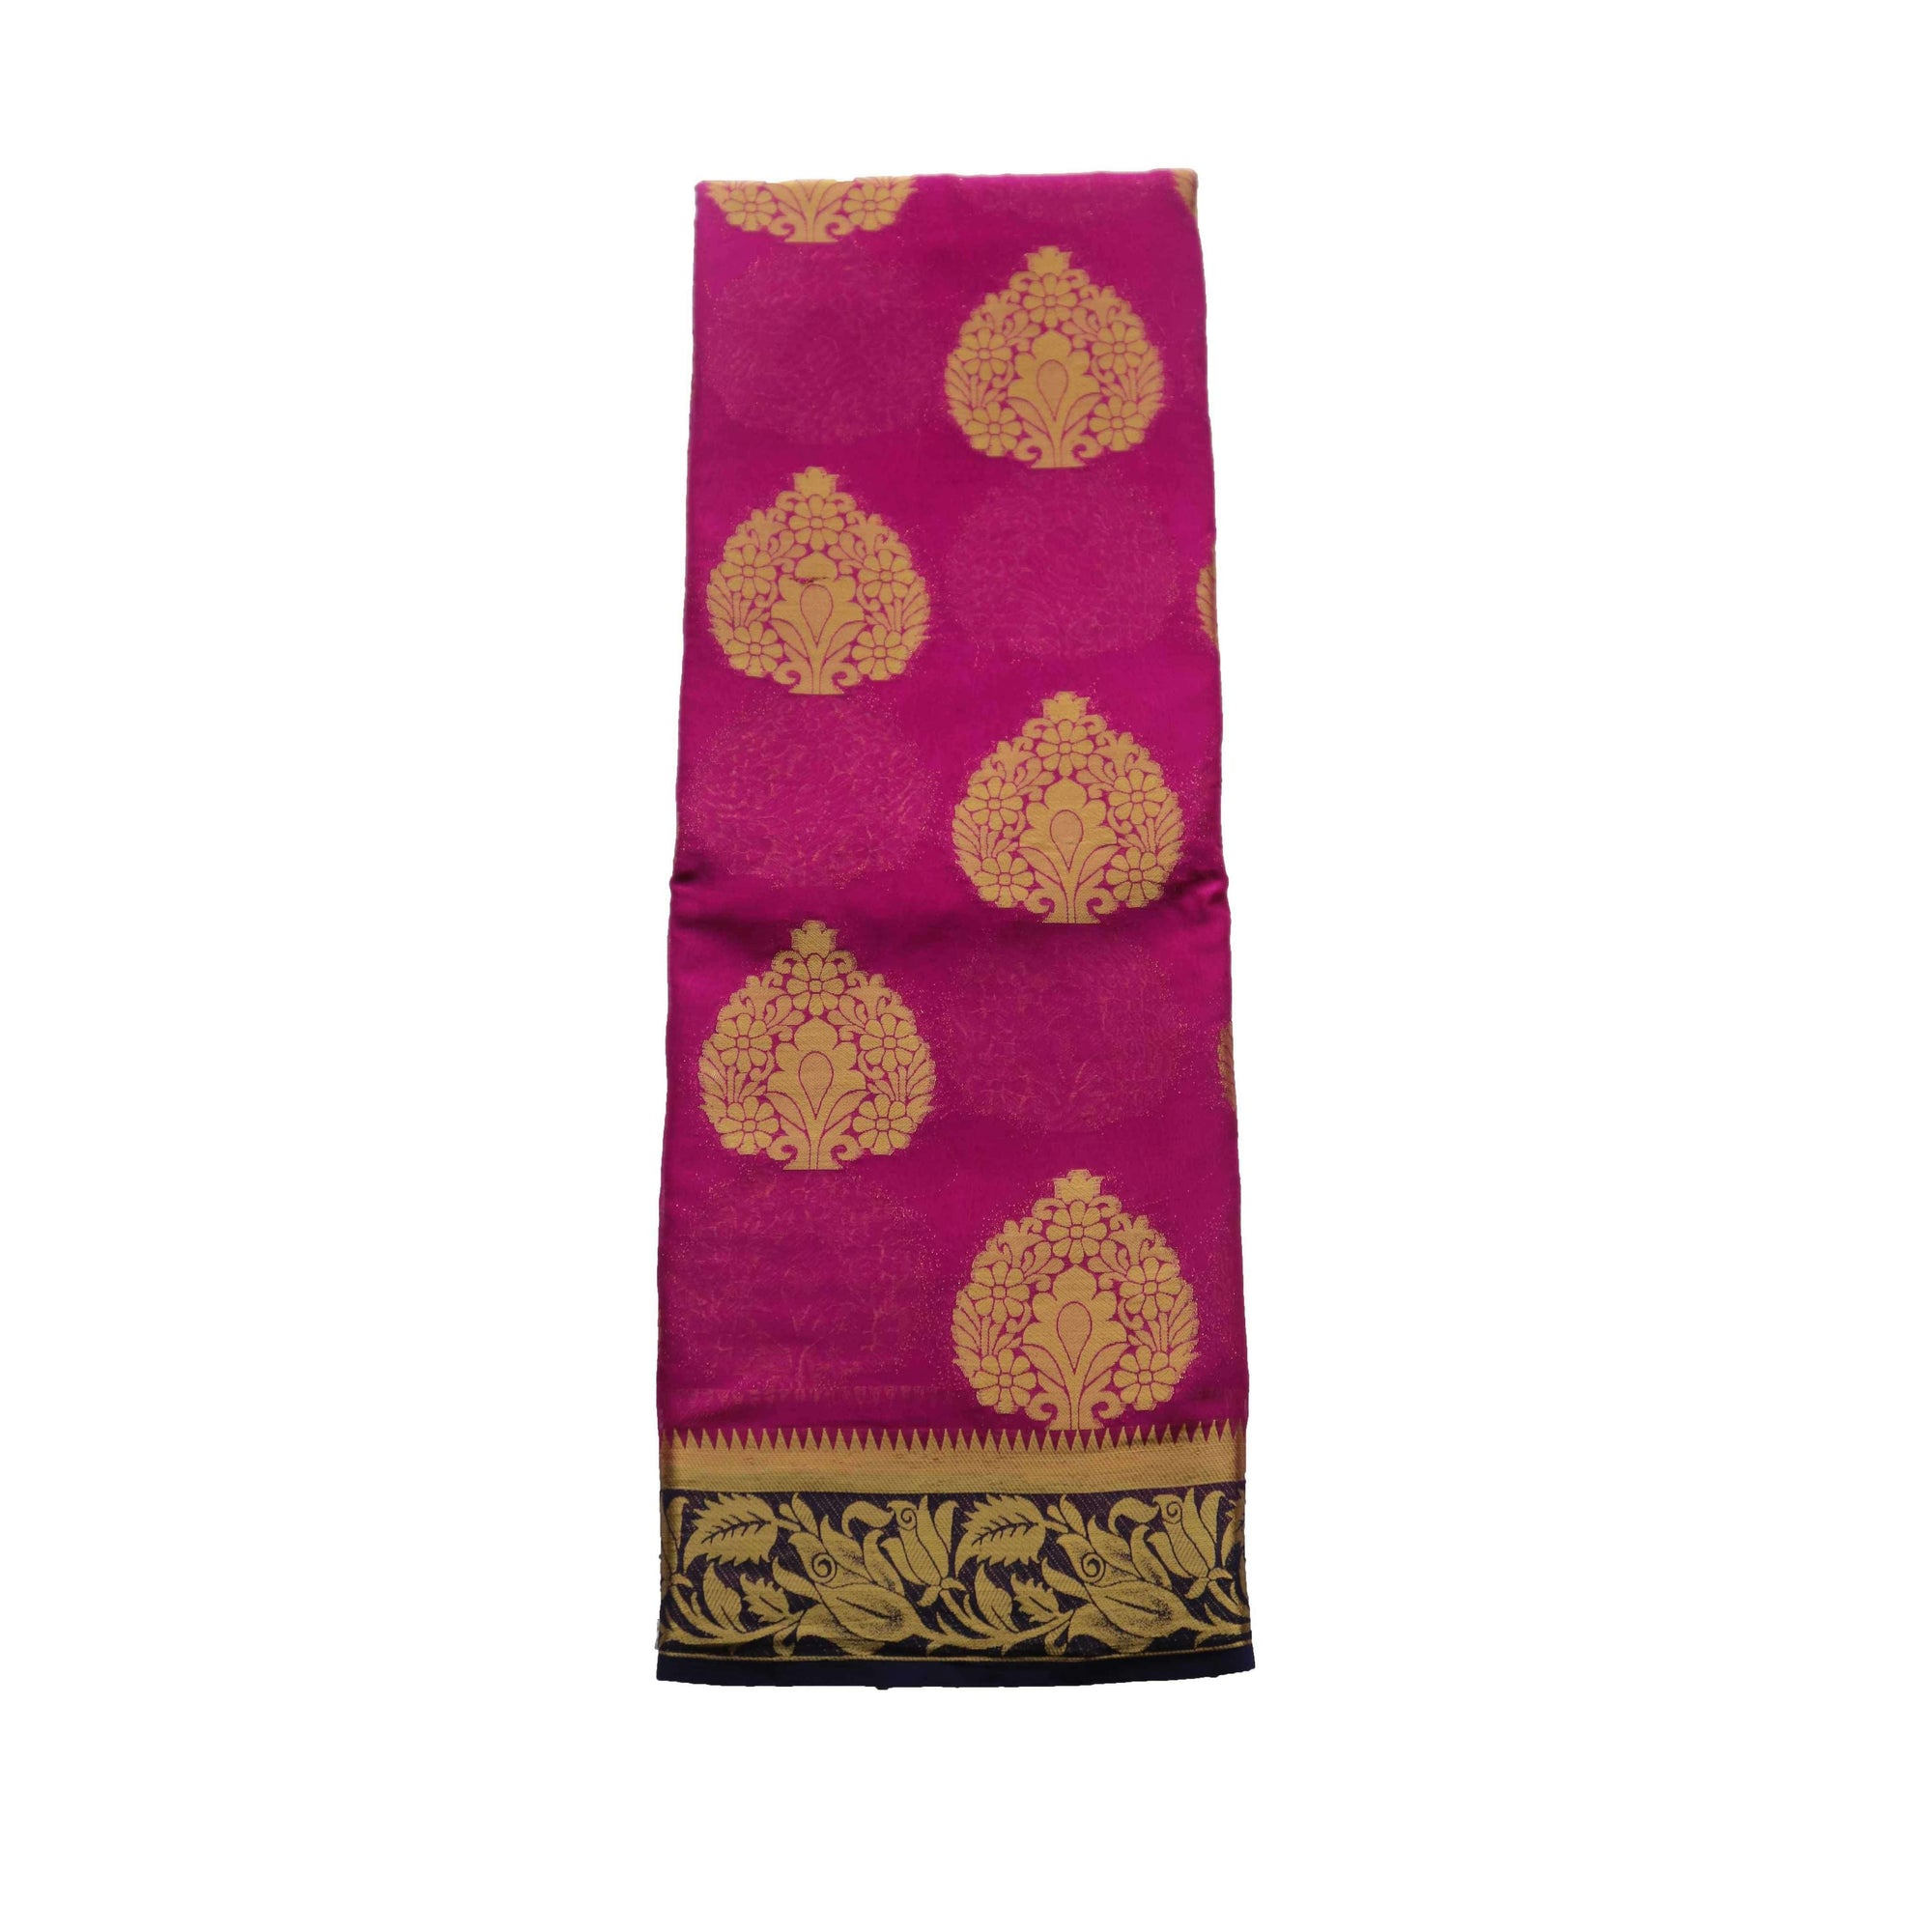 Arars Women's Kanchipuram Kanjivaram Pattu Style Chiffon  Silk Saree With Blouse (277 SF PURPLE )